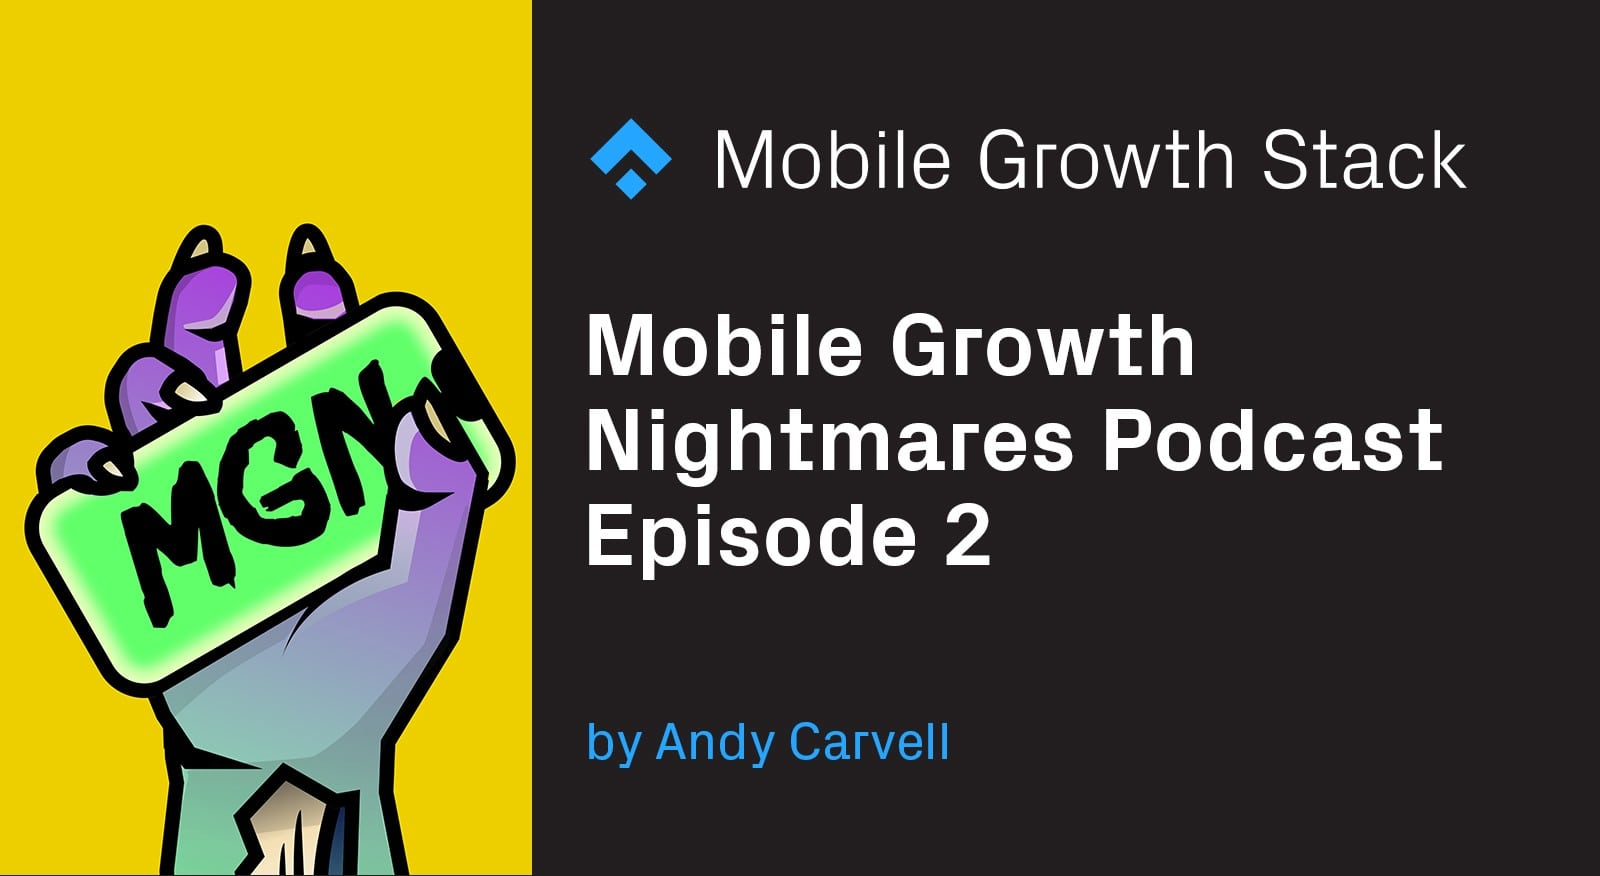 Mobile Growth Nightmares Podcast #2 featuring stories from Duolingo, Hopper, and Tubi TV